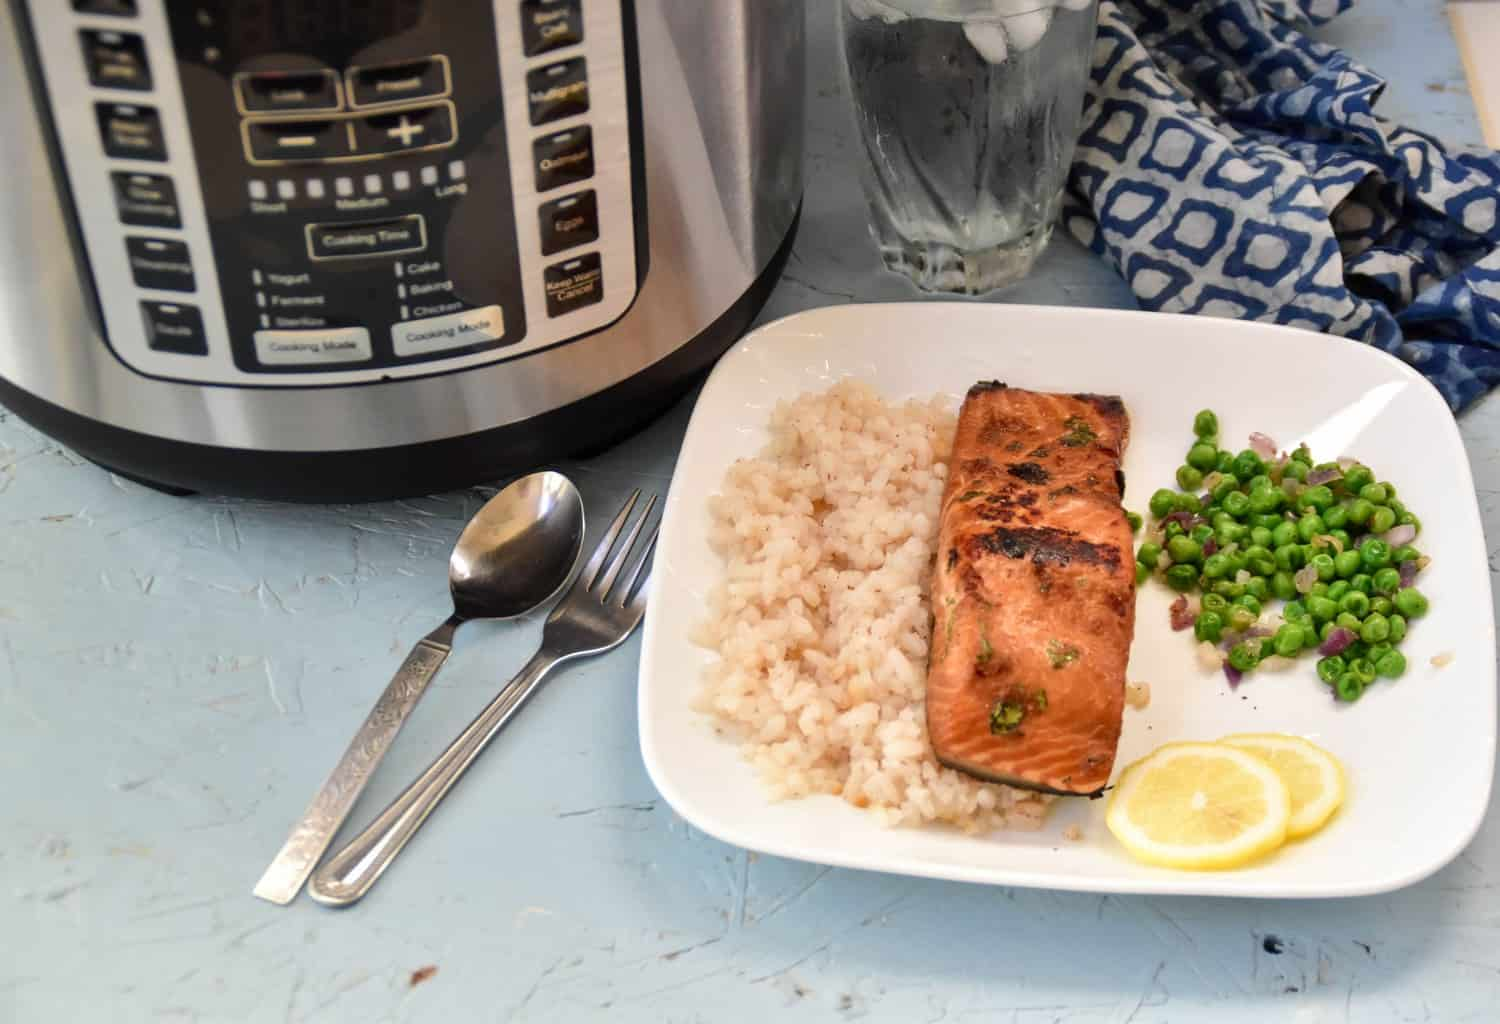 """<img src=""""https://cdn.shortpixel.ai/client/q_glossy,ret_img,w_1500,h_1024/sous vide salmon.jpg"""" alt=""""sous vide salmon with ginger and soy sauce marinade"""">"""